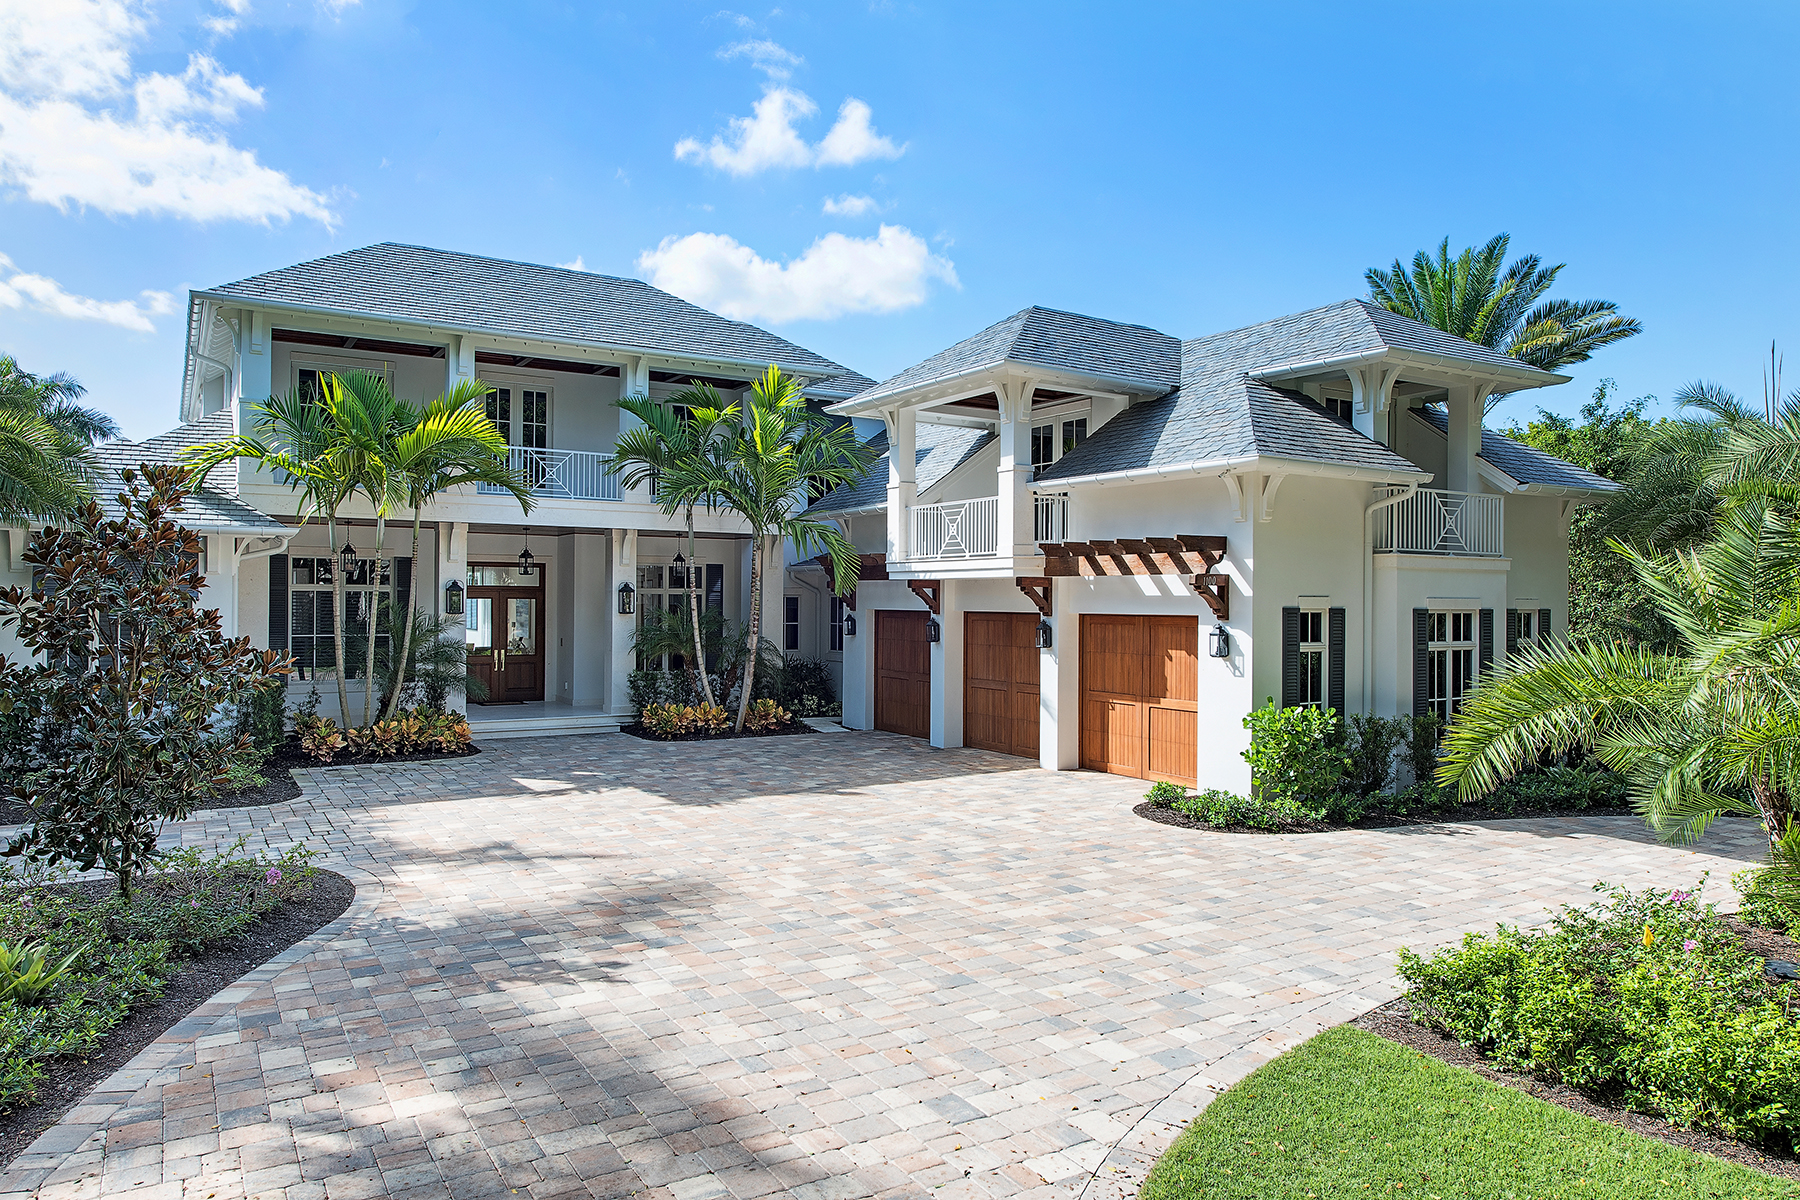 Casa Unifamiliar por un Venta en PORT ROYAL 1100 Galleon Dr, Naples, Florida 34102 Estados Unidos